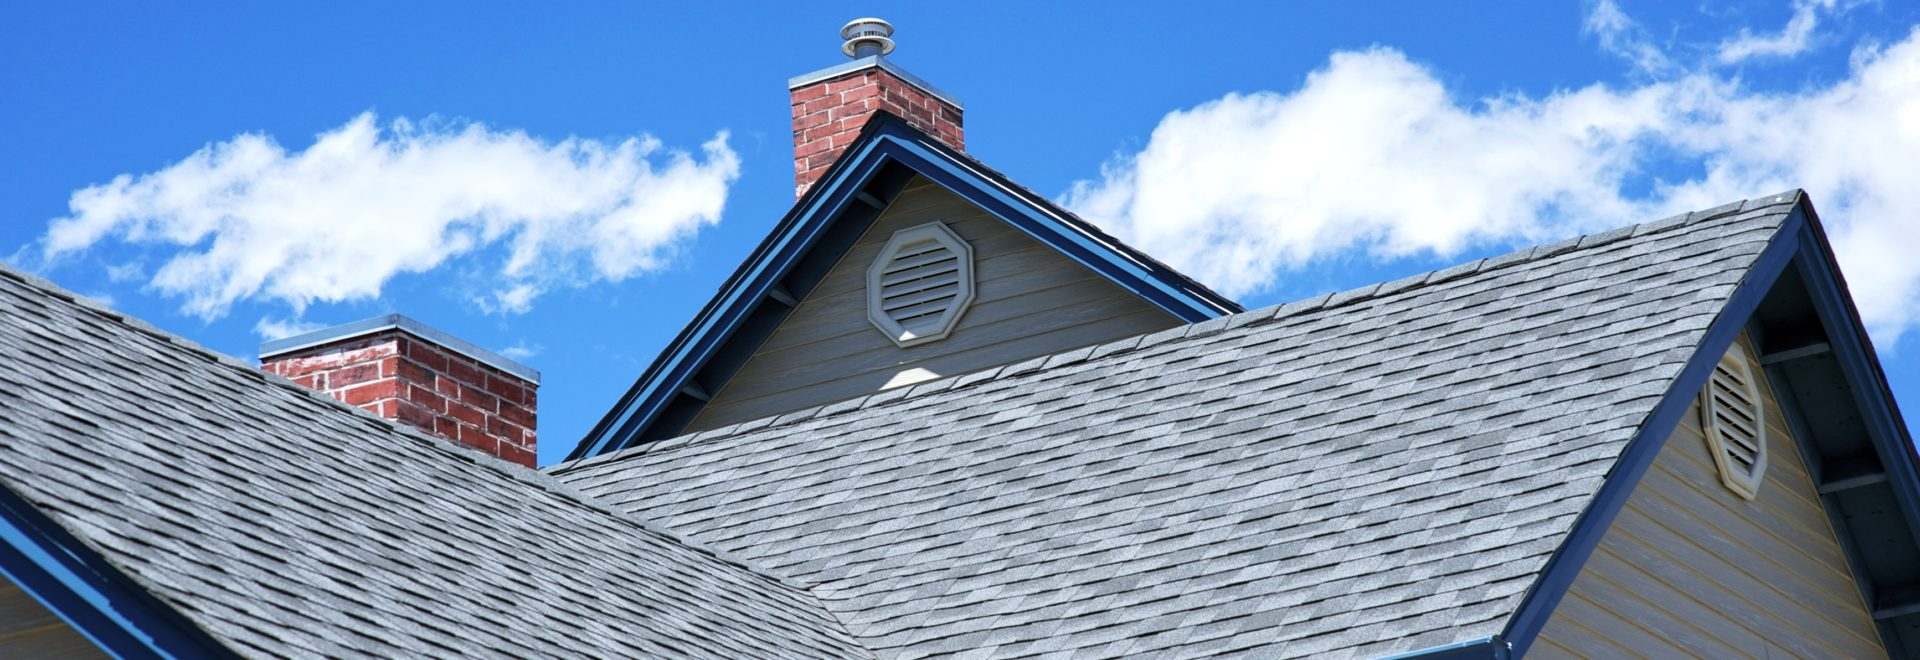 roofing tips from experts